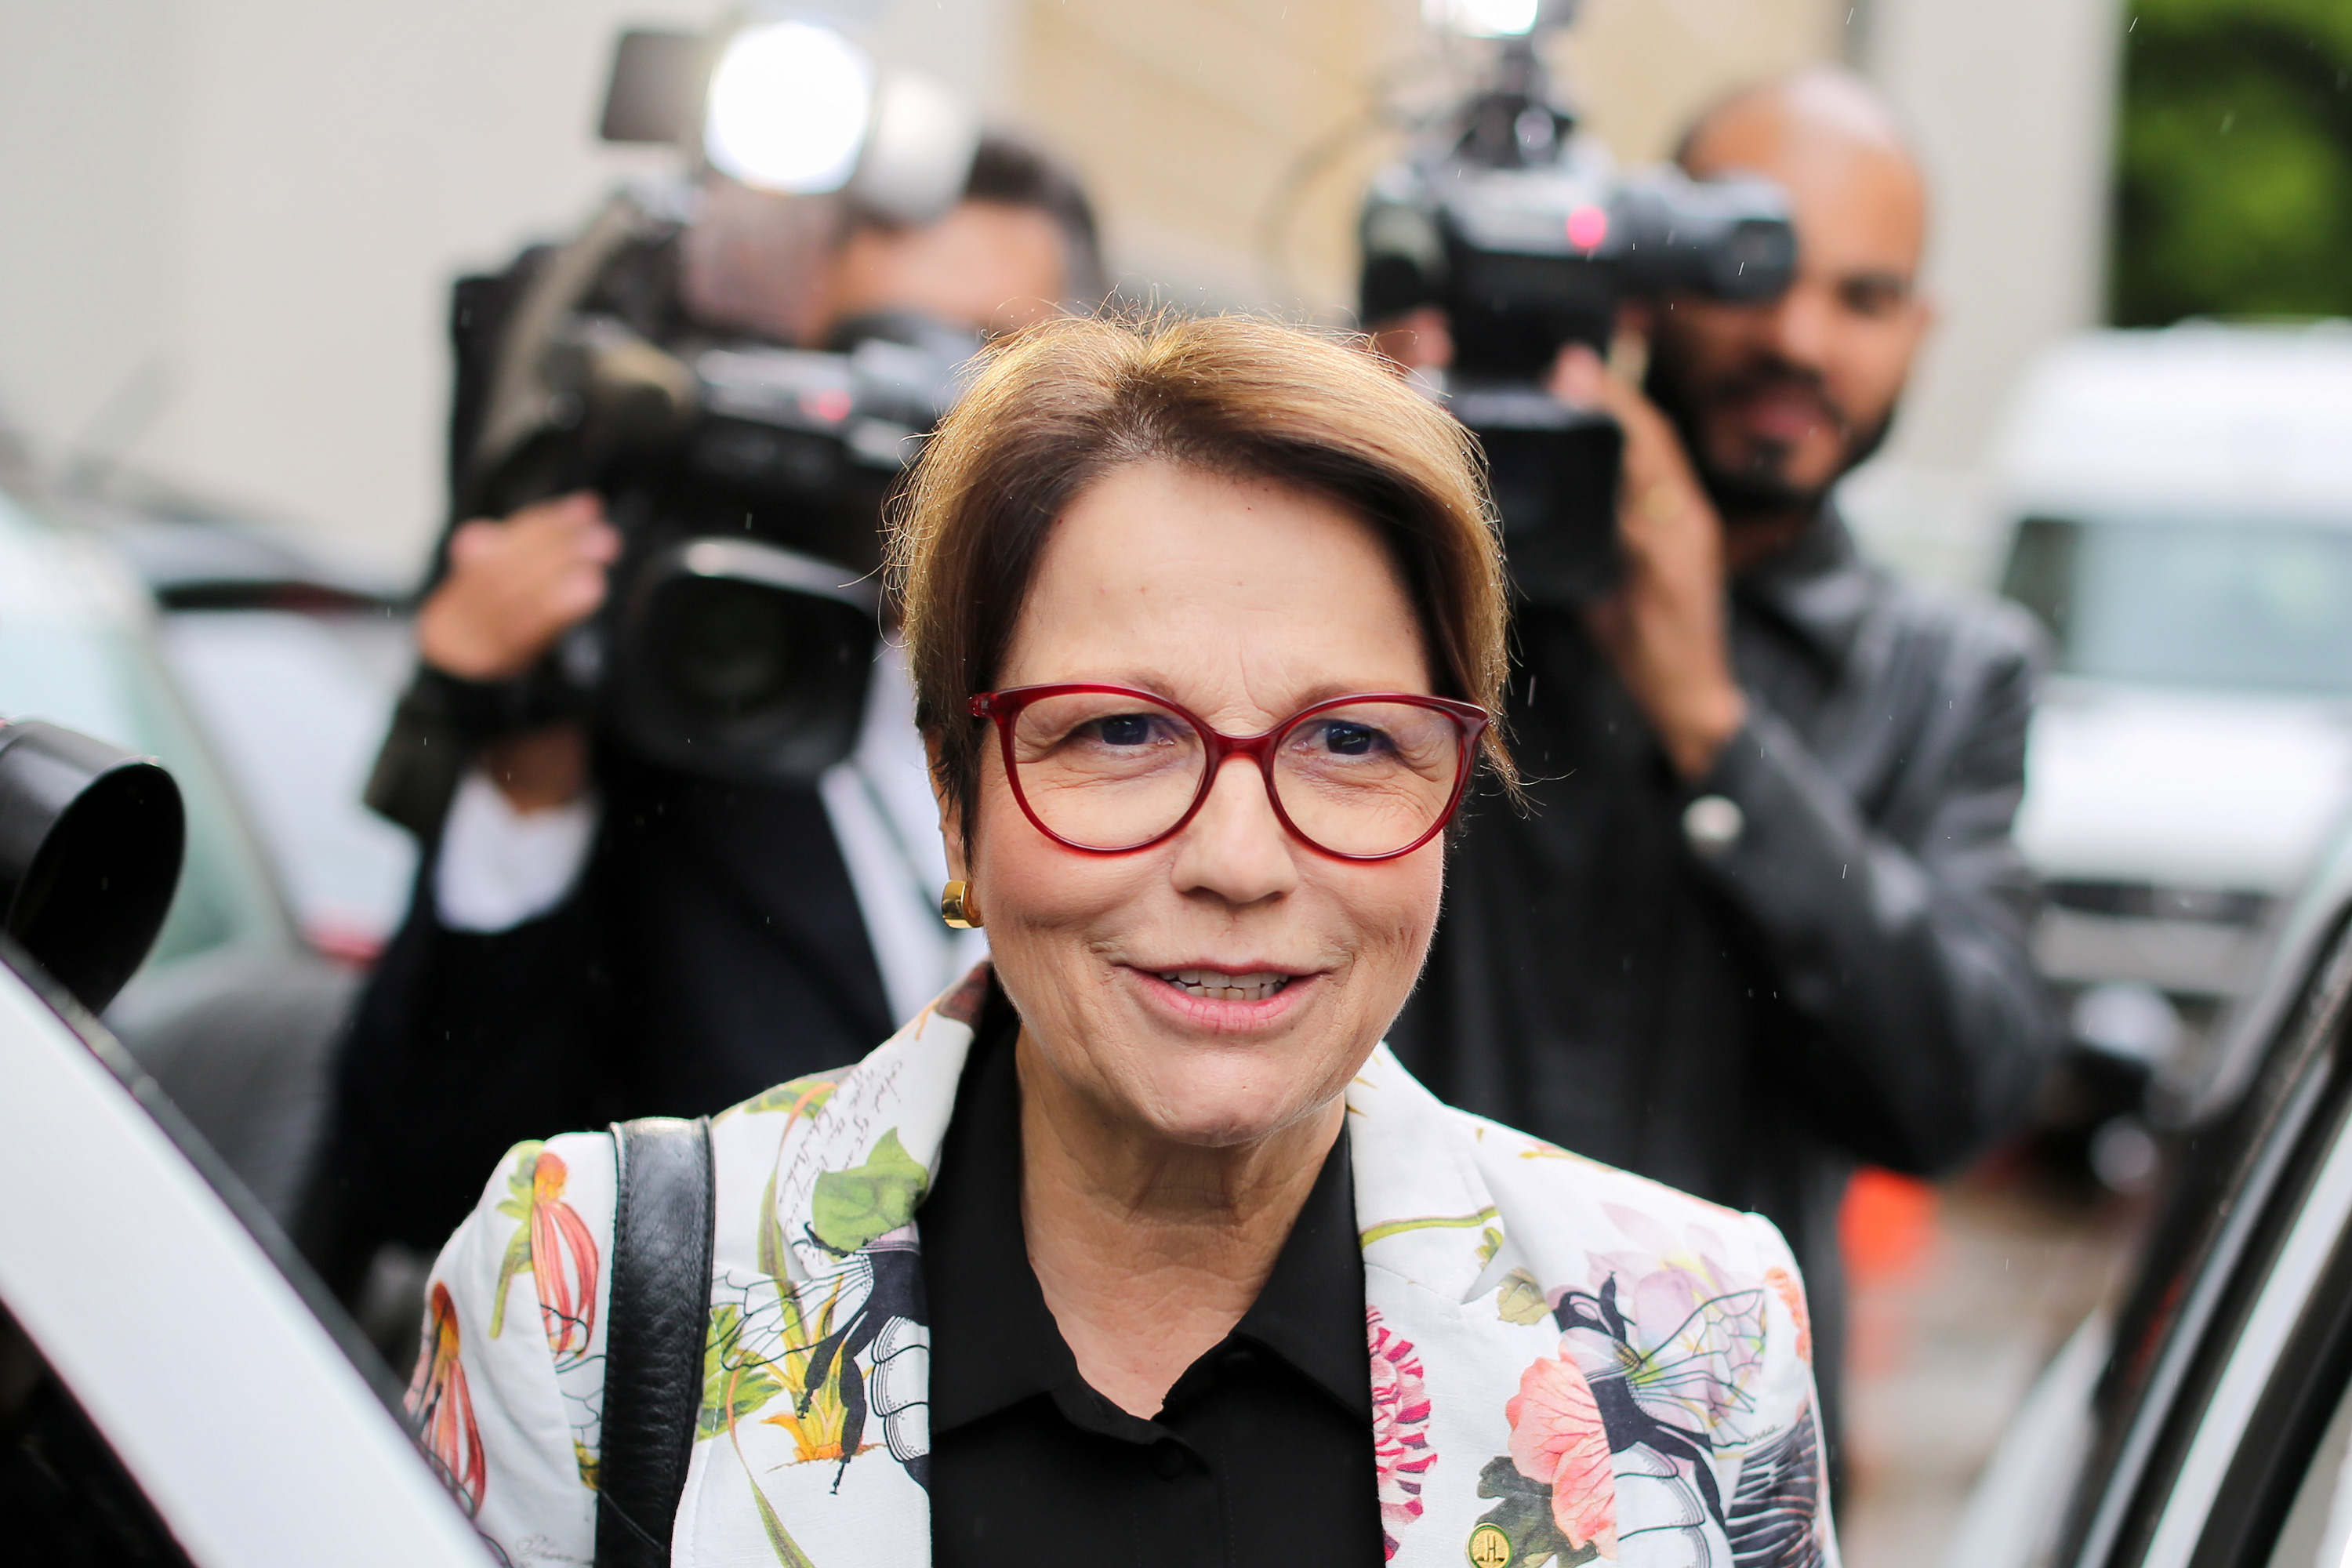 Brazilian Deputy Tereza Cristina Correa da Costa Dias, who was appointed to the Ministry of Agriculture by Brazilian president-elect Jair Bolsonao, leaves her home in Brasilia on November 8, 2018. (Photo by Sergio LIMA / AFP)        (Photo credit should read SERGIO LIMA/AFP/Getty Images)